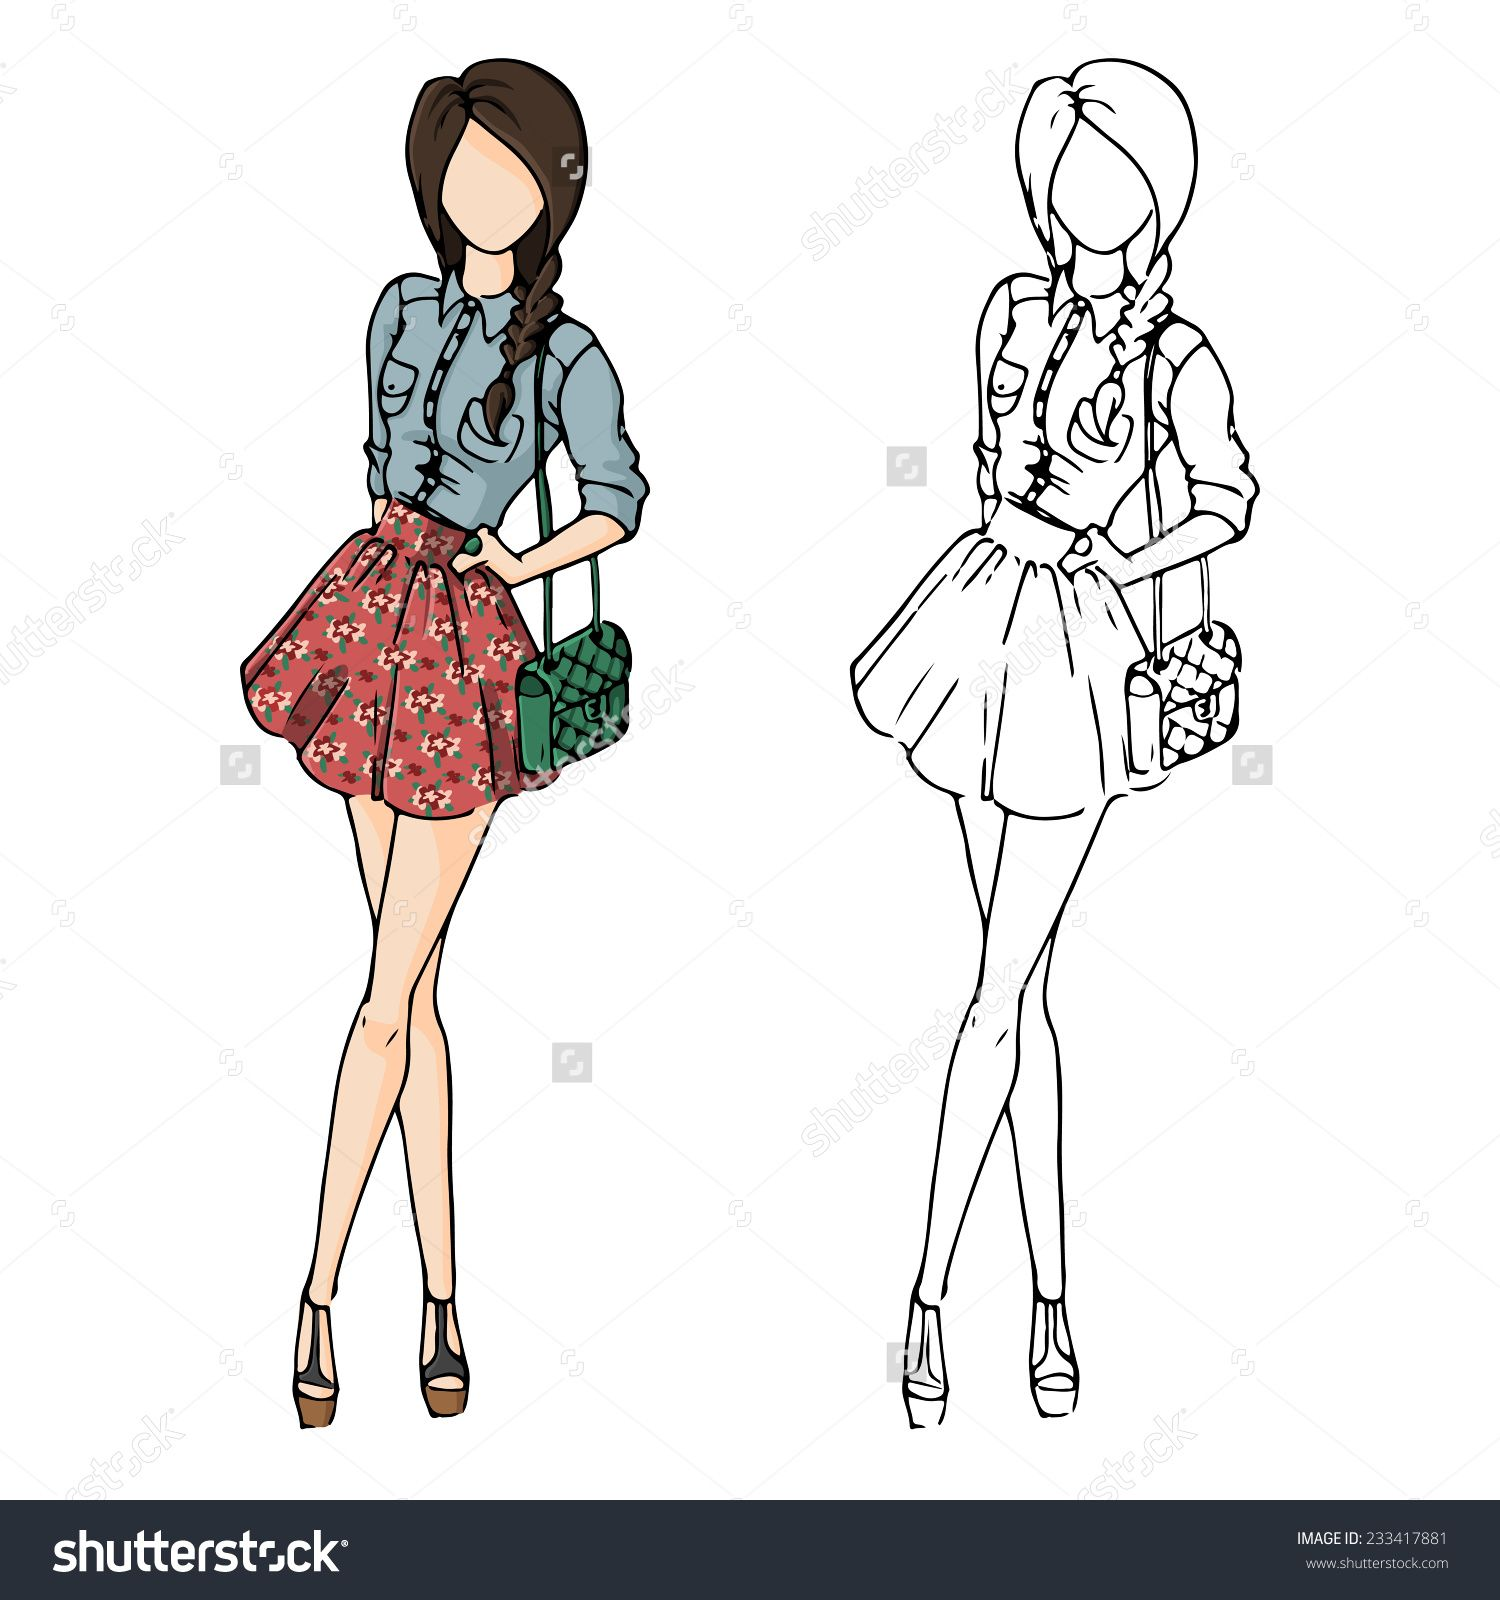 pin by davida maines on drawing clothes ideas pinterest